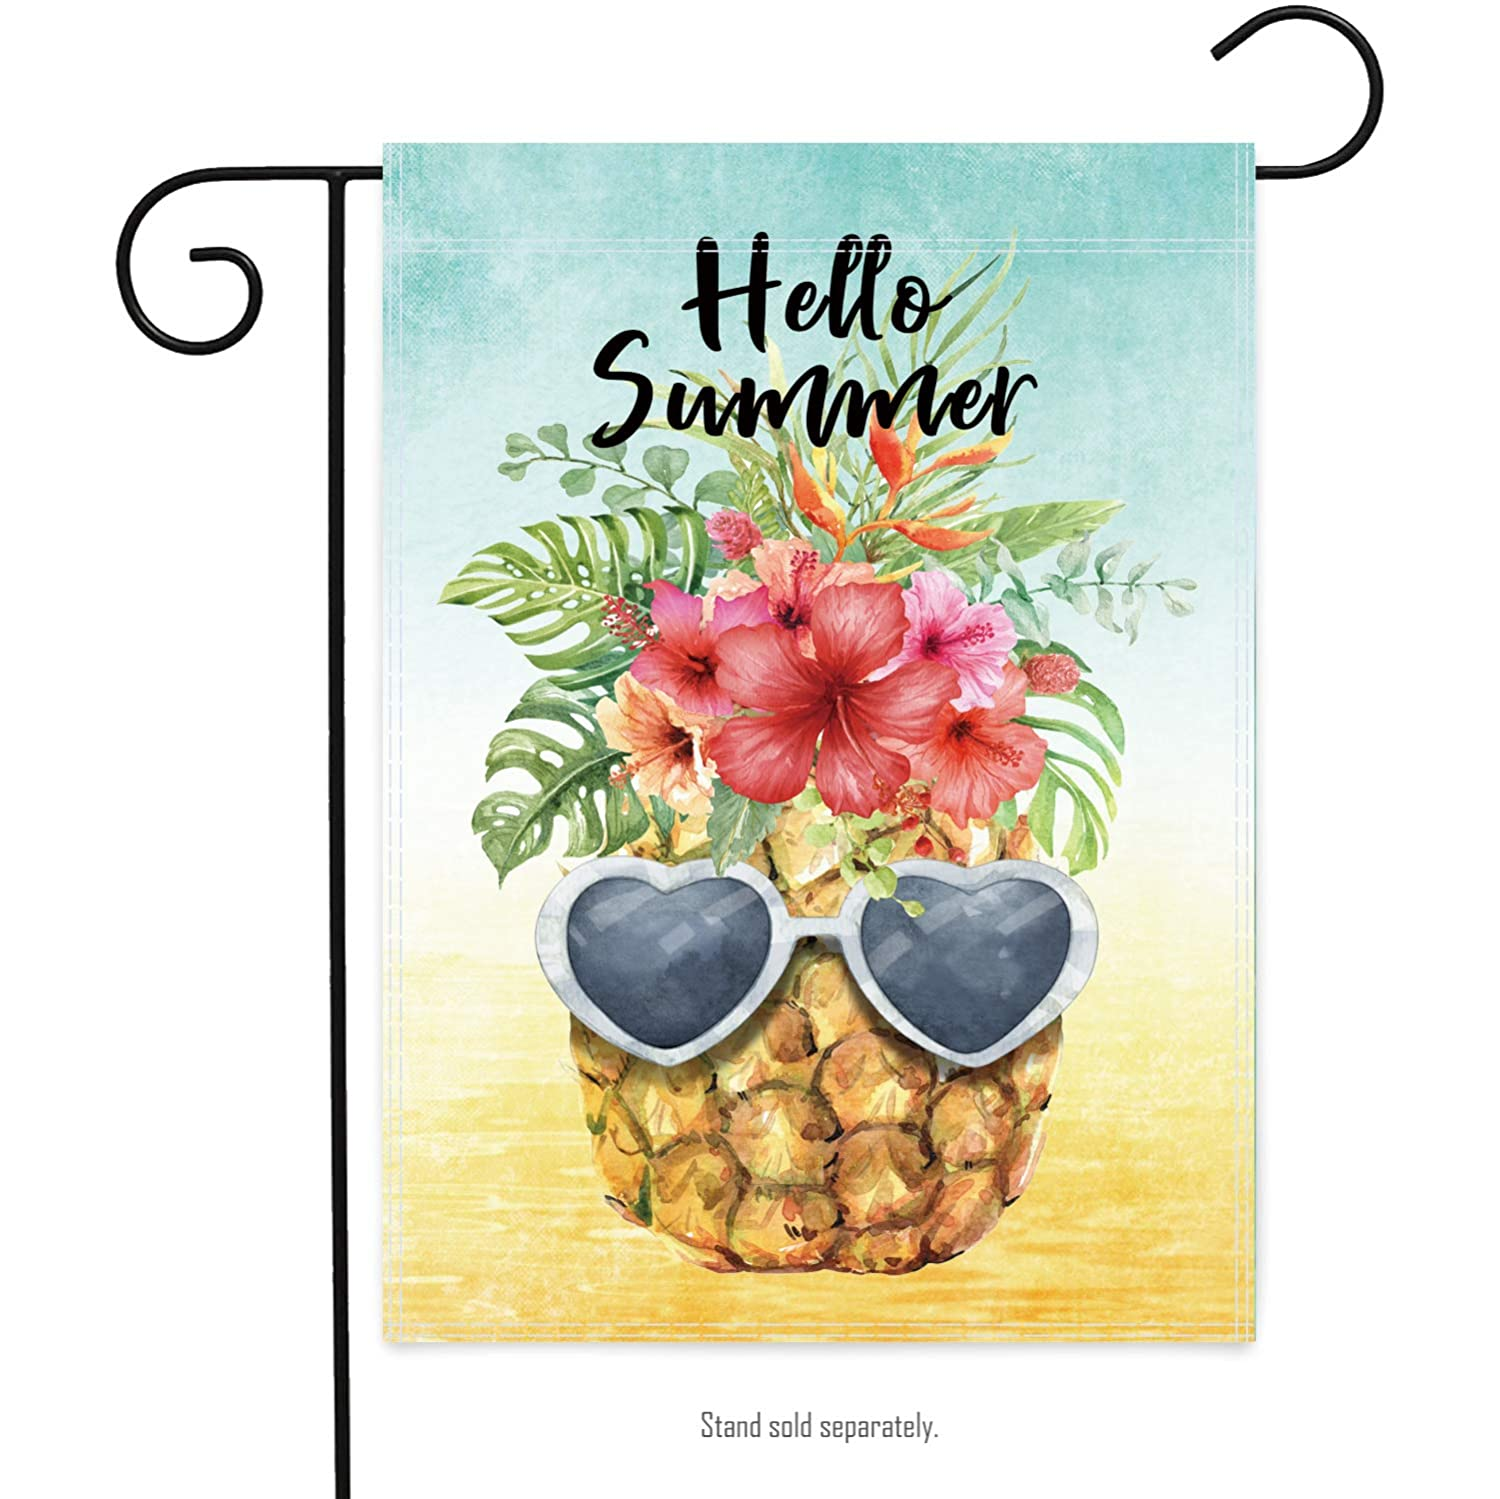 WDGG Hello Summer Pineapple Garden Flag 12×18 Inch Double Sided Vertical Yard Outdoor Decoration